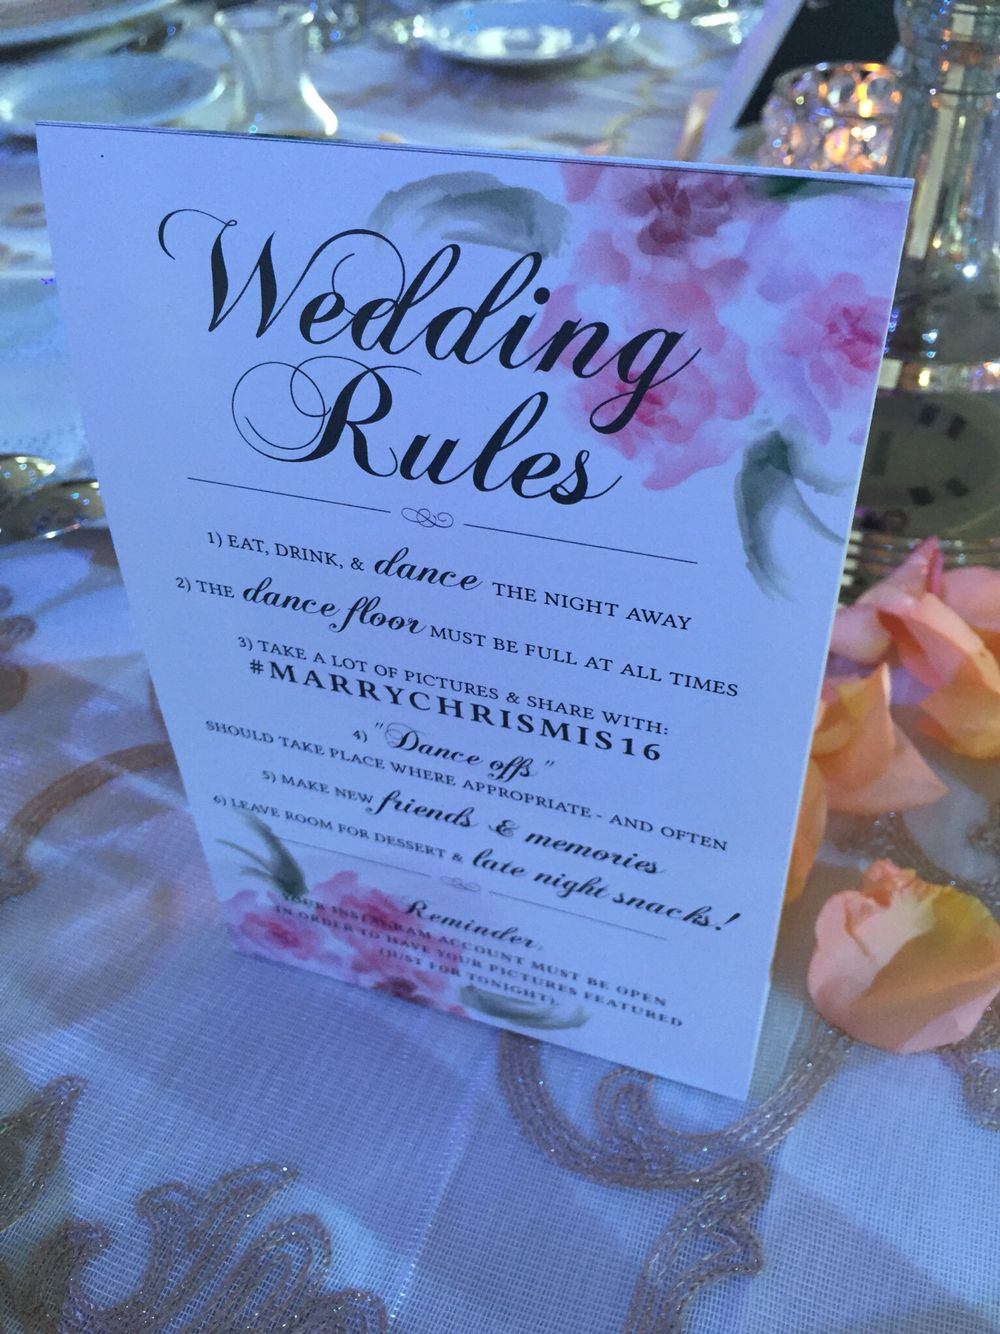 have wedding rules for your guests on the back of your